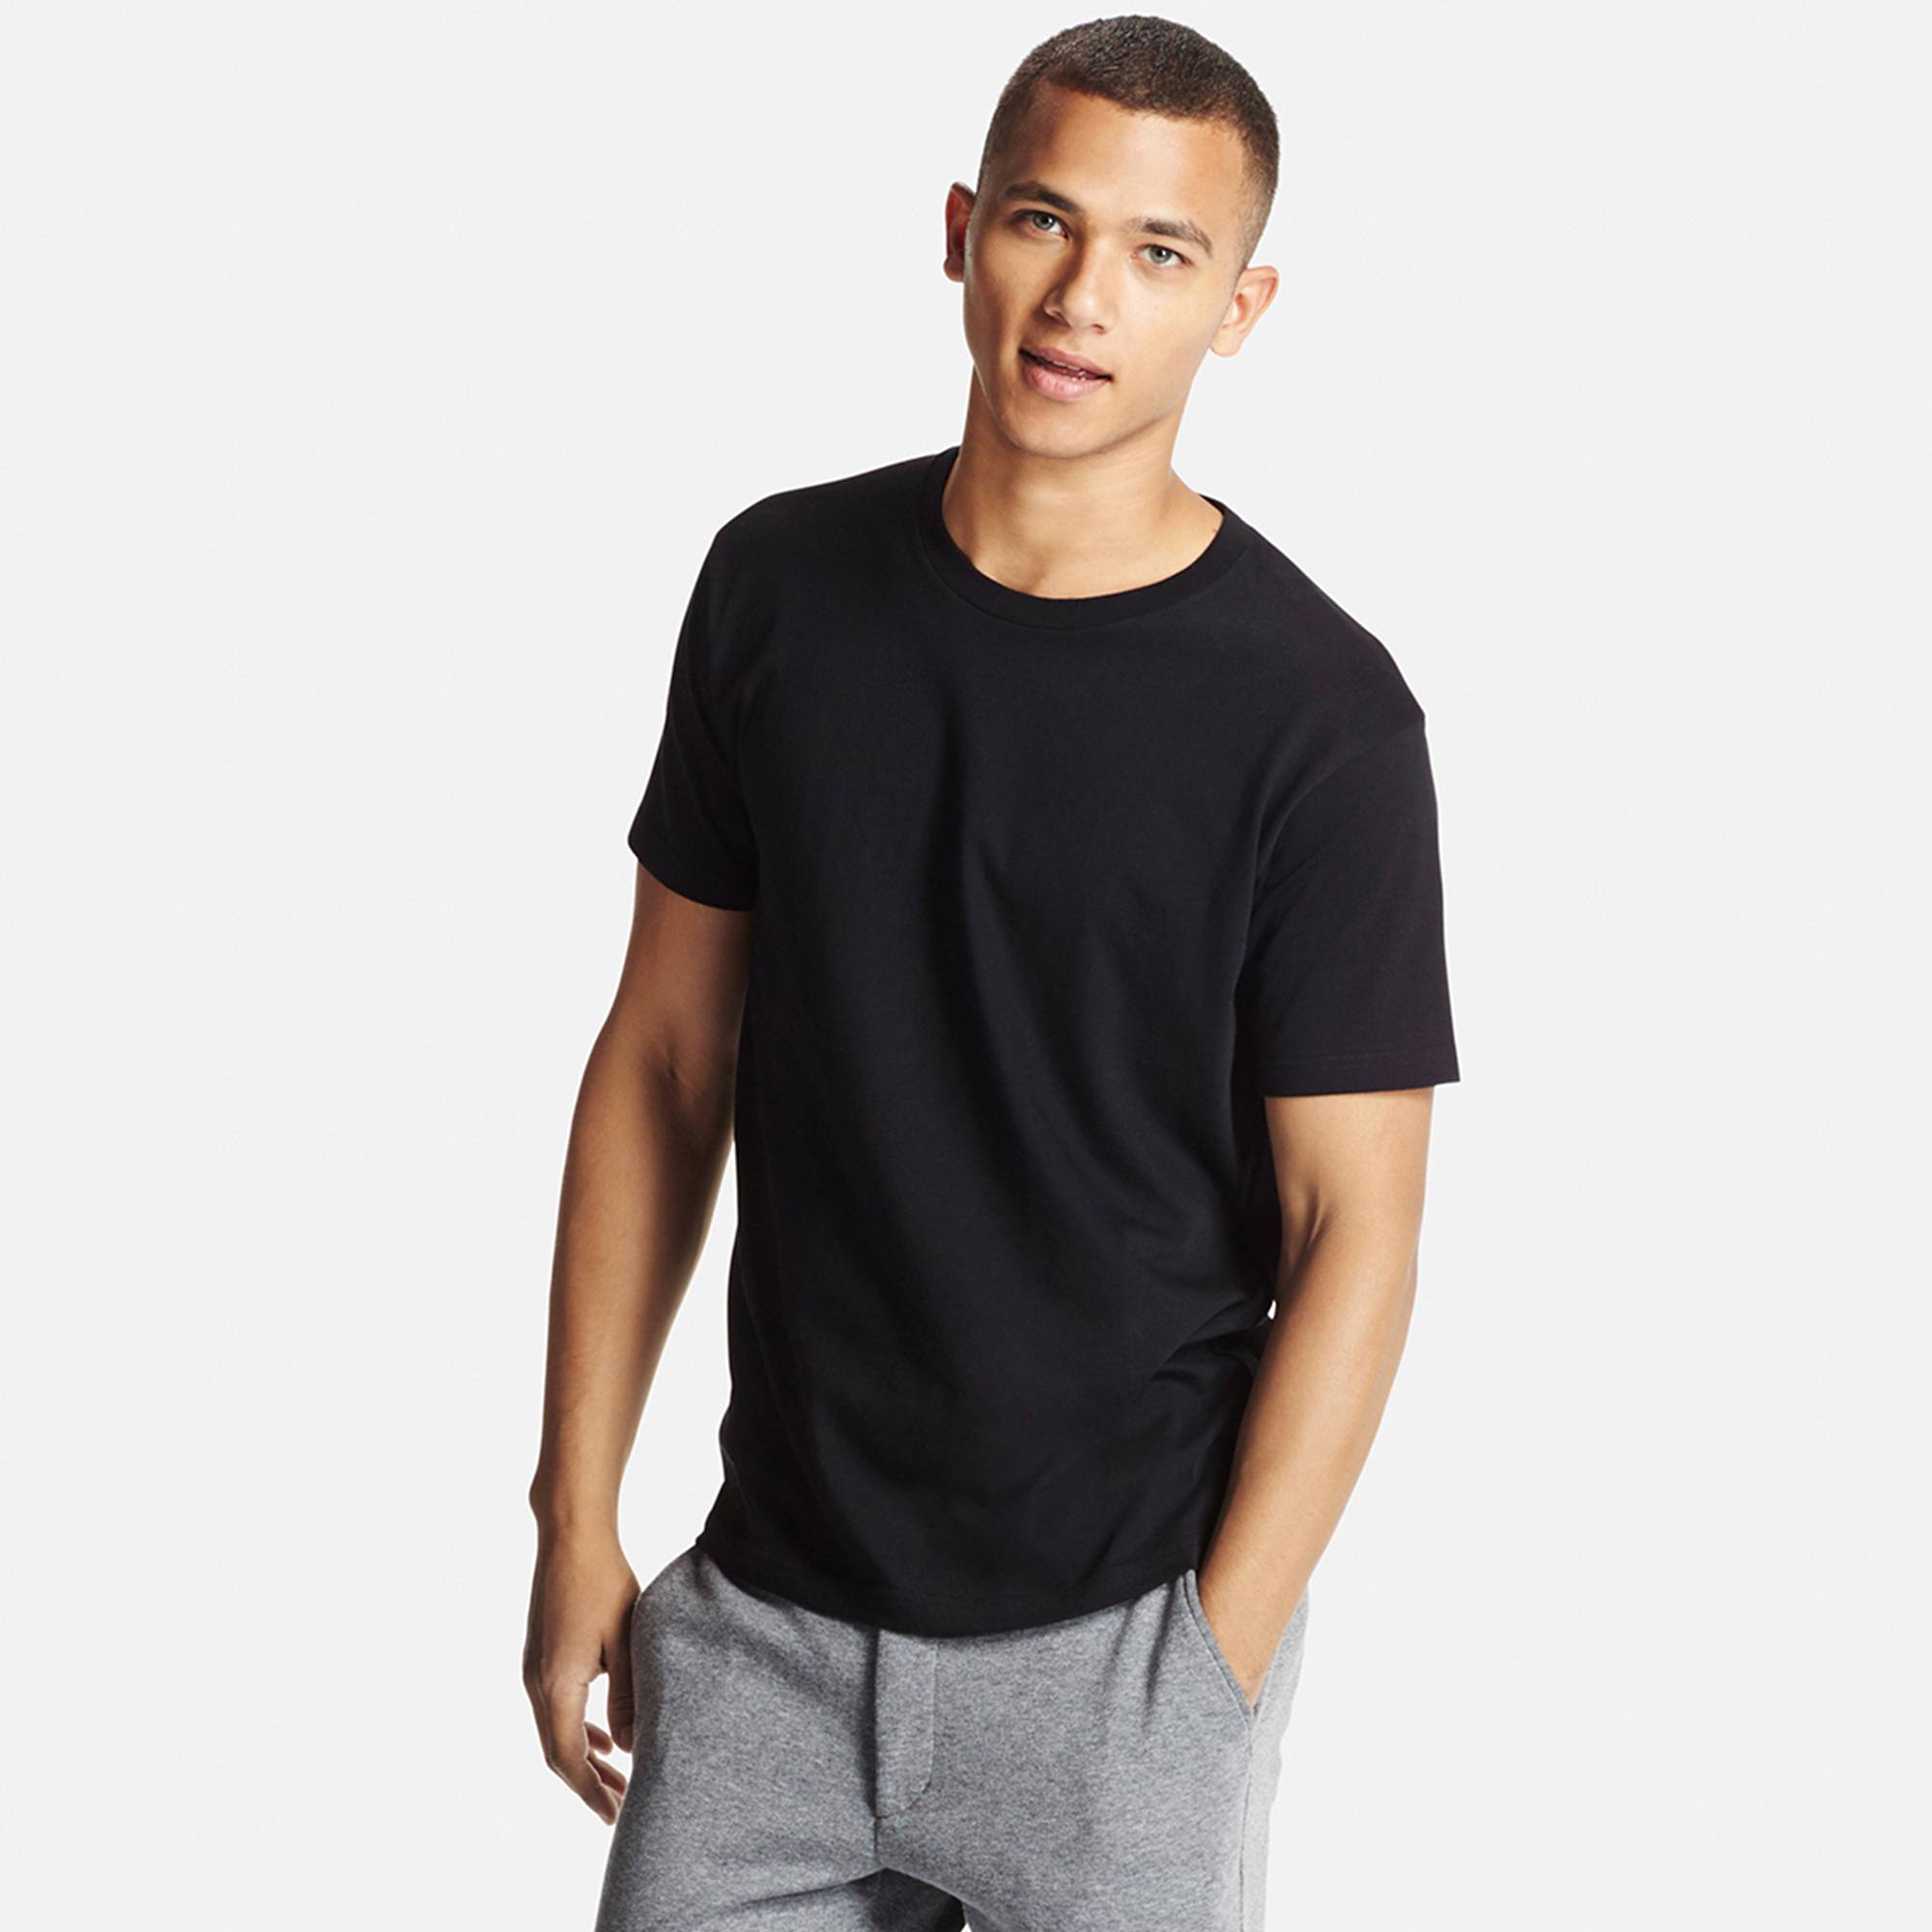 Black t shirt man - Men Dry Crew Neck T Shirt Black Large